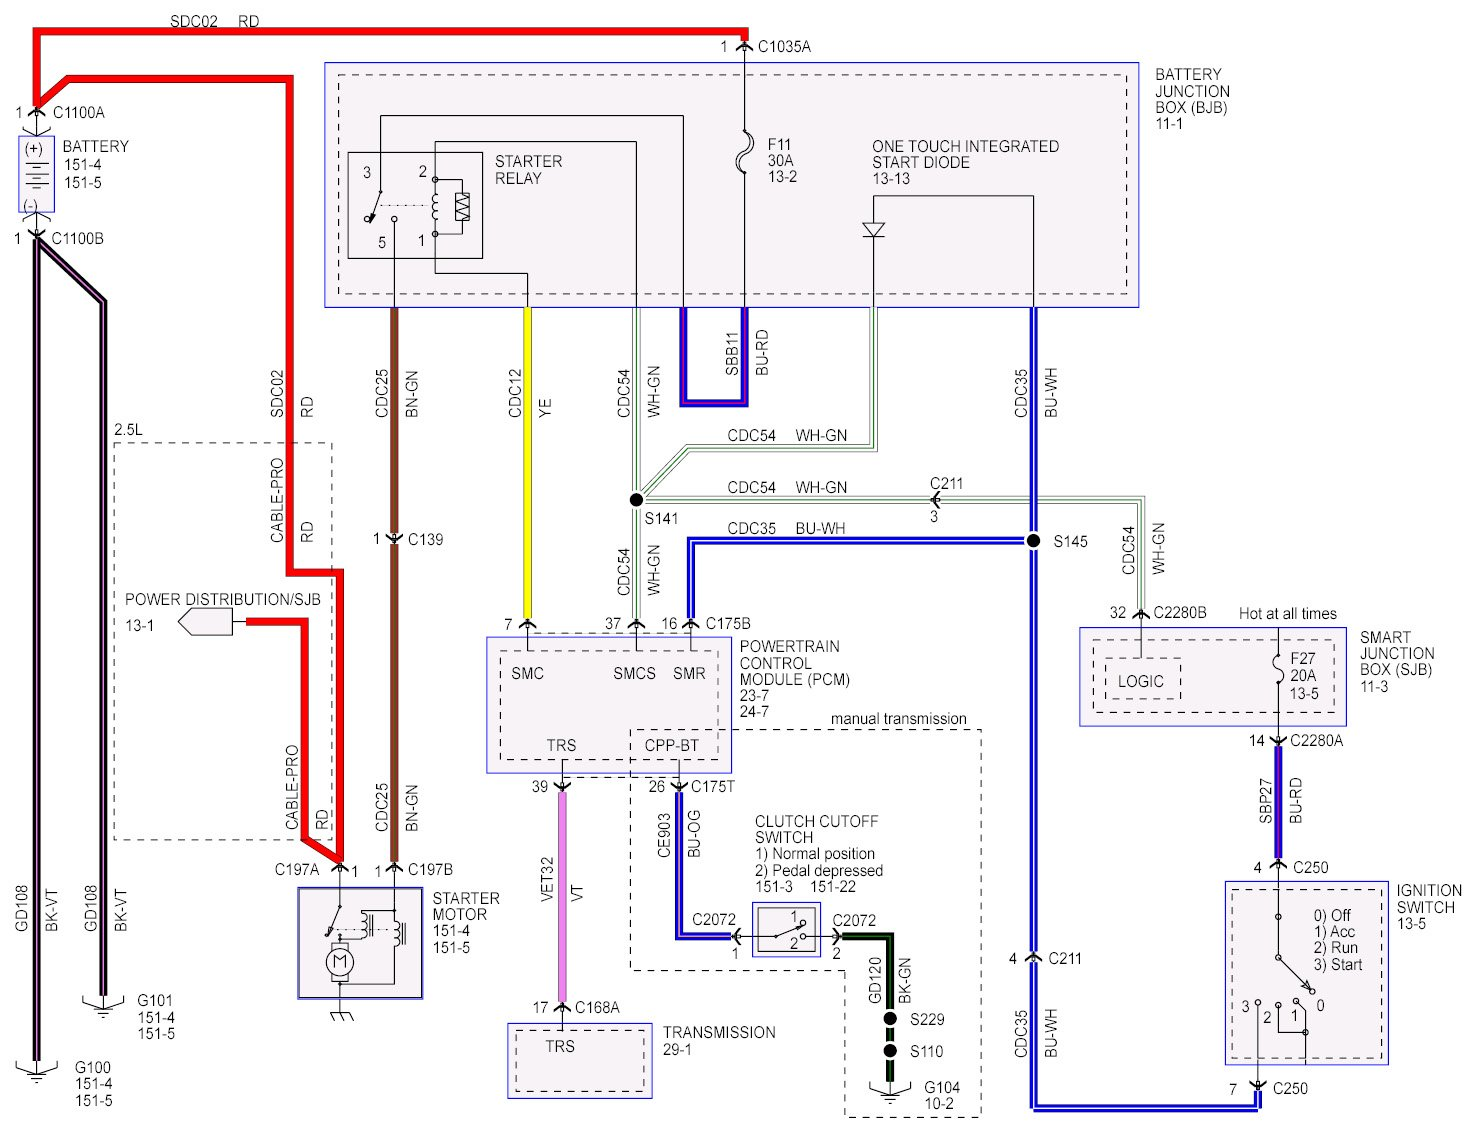 2012 05 28_213559_2009_escape_starting_system wiring diagram ford escape the wiring diagram readingrat net headlight wiring harness for 2002 ford escape at n-0.co